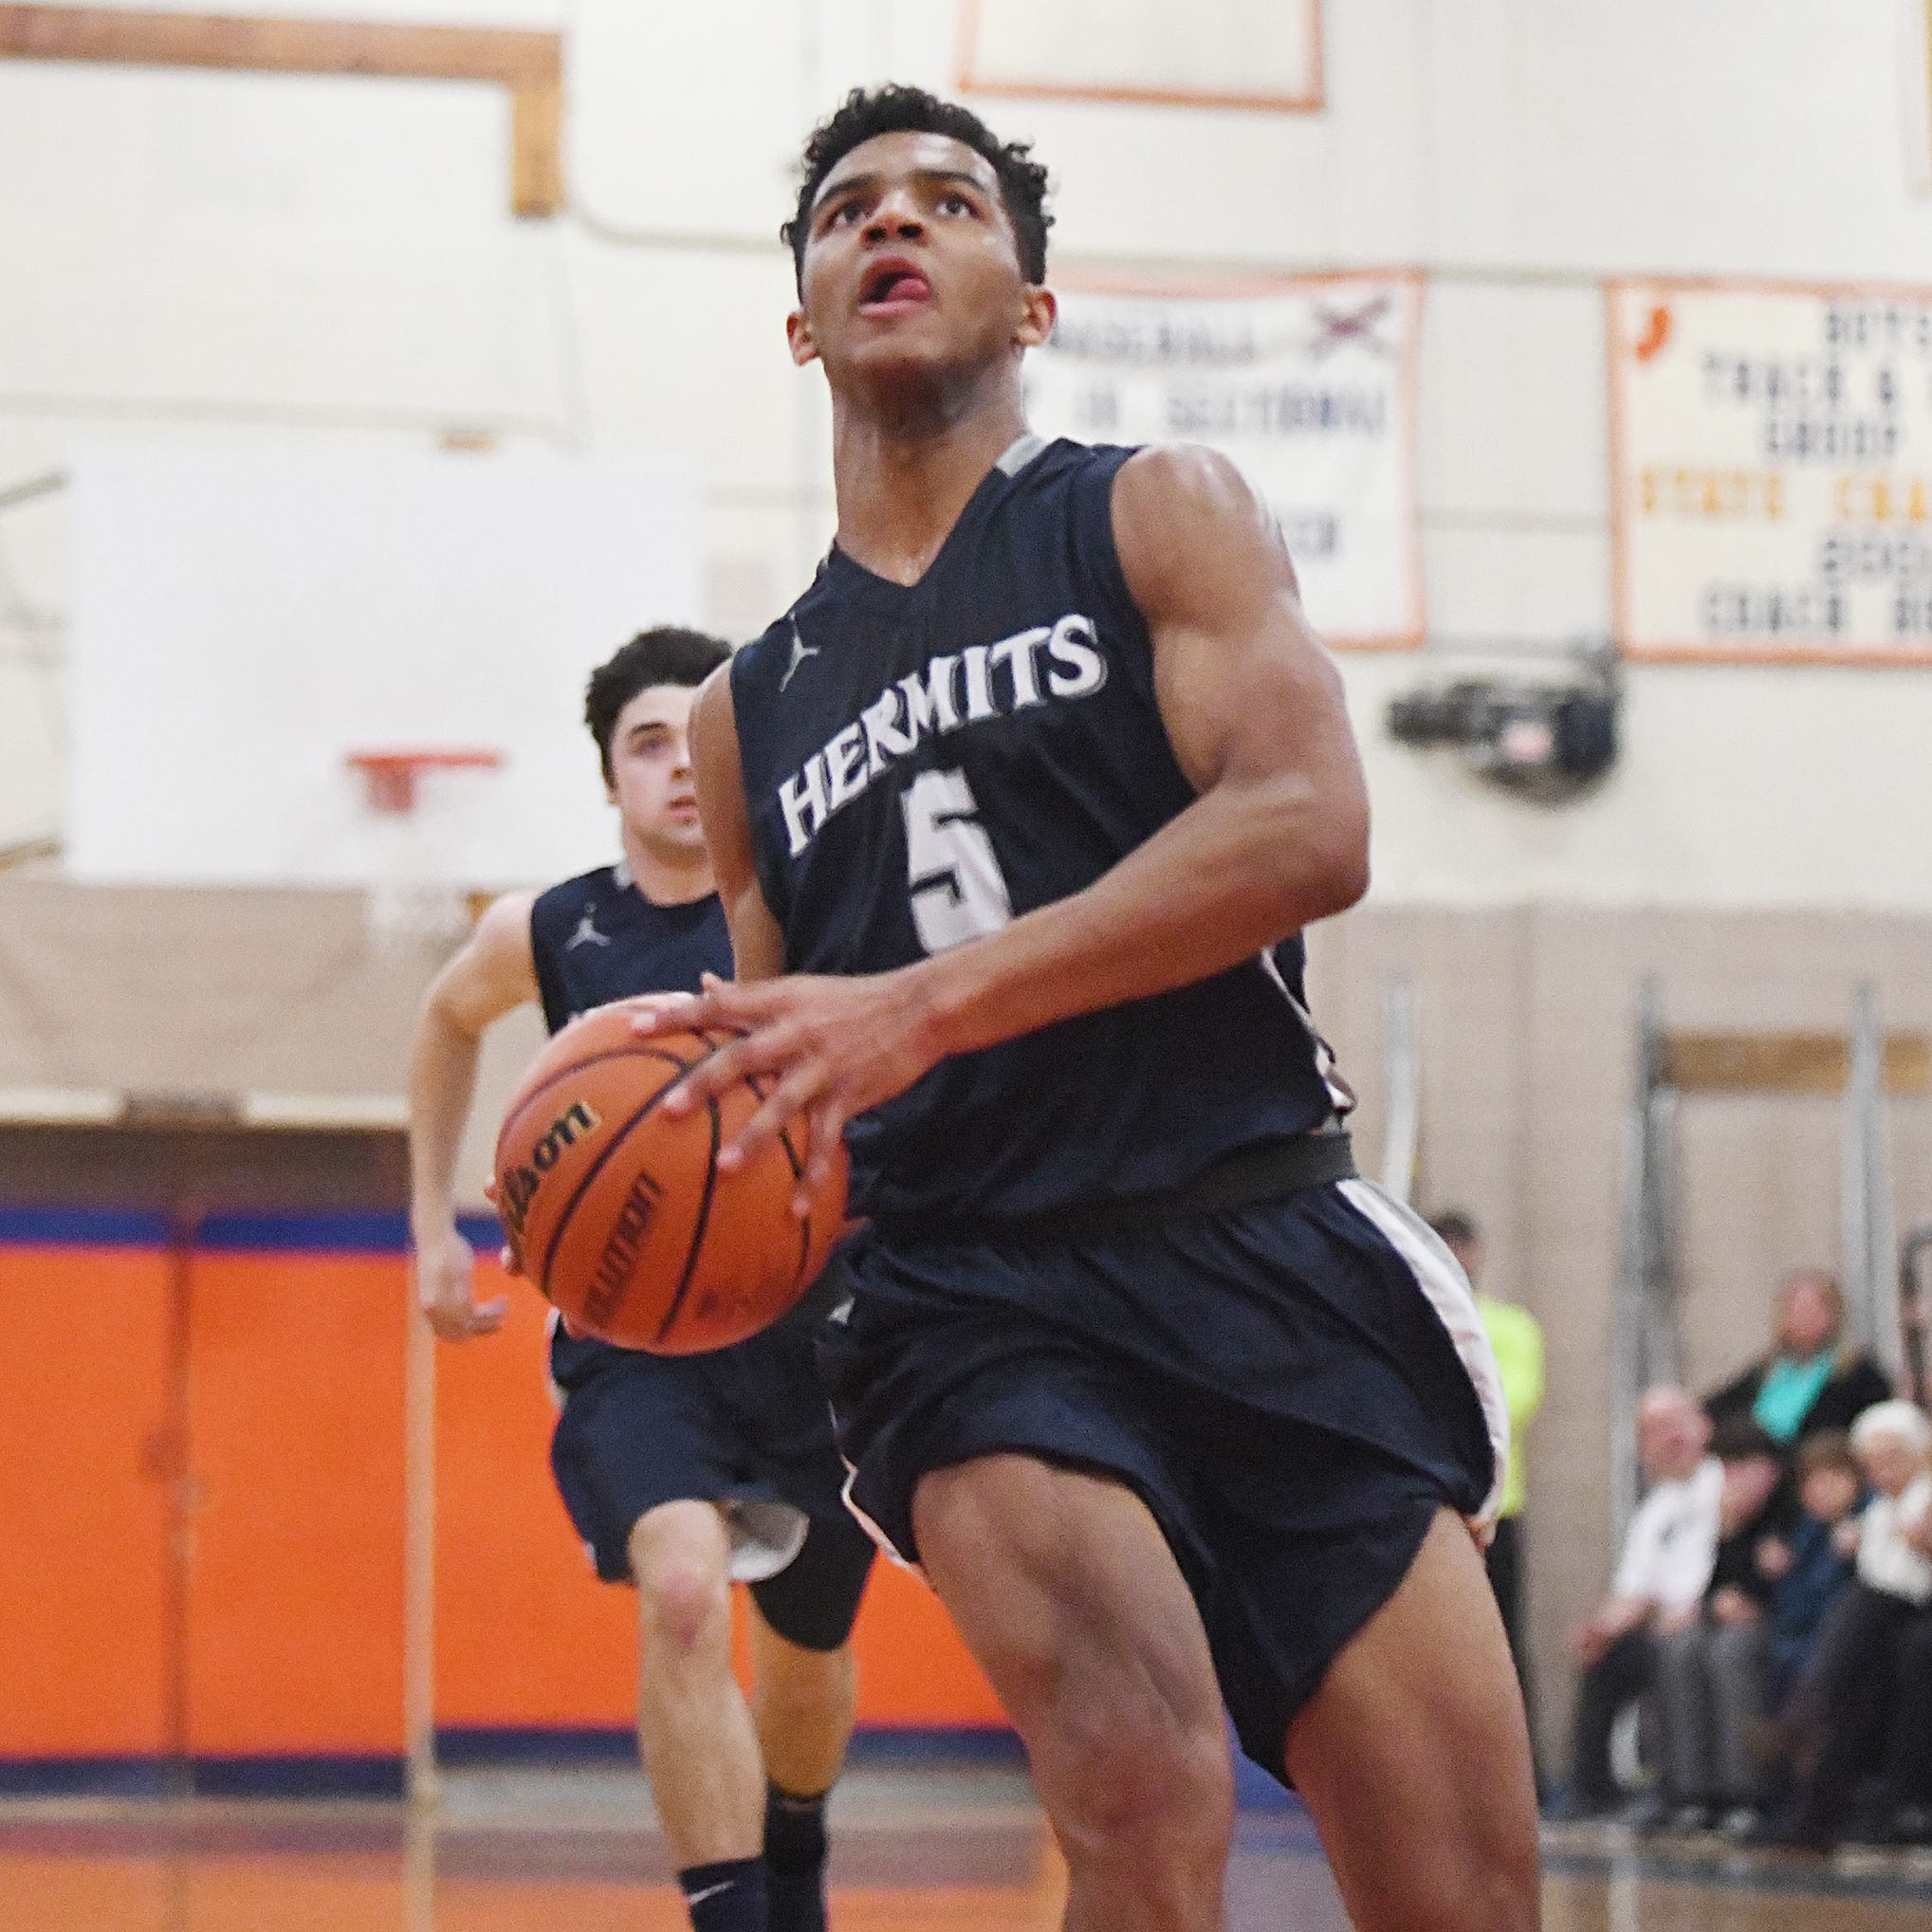 South Jersey basketball: Charles Solomon powers St. Augustine past Millville